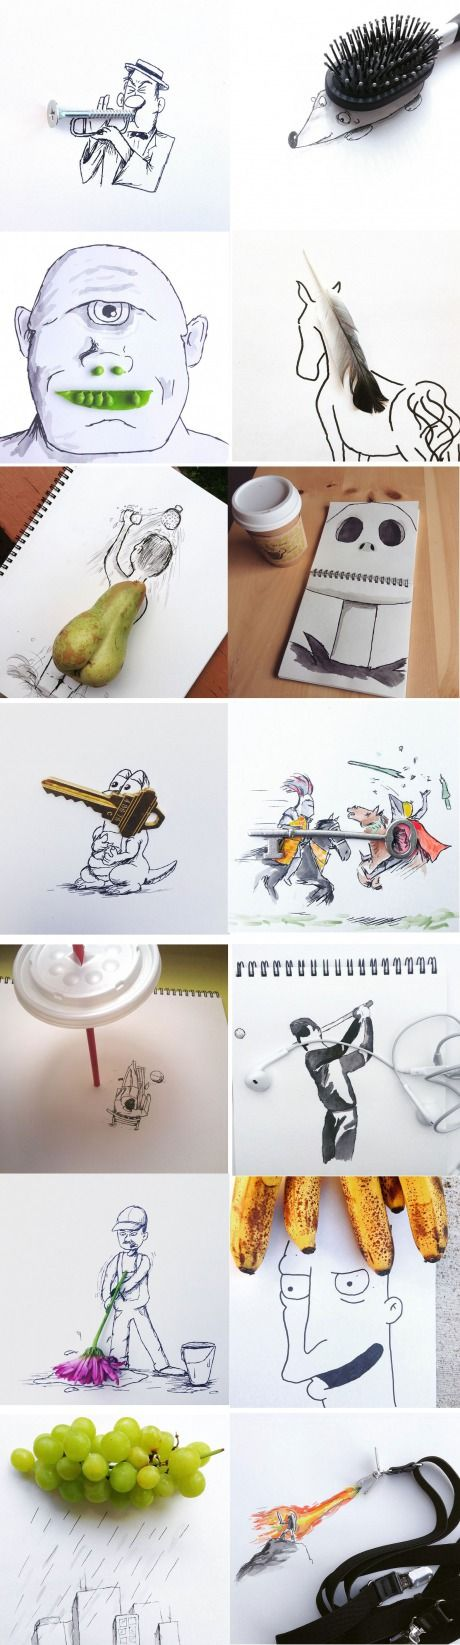 Artist created pictures with creativity and some everyday items.